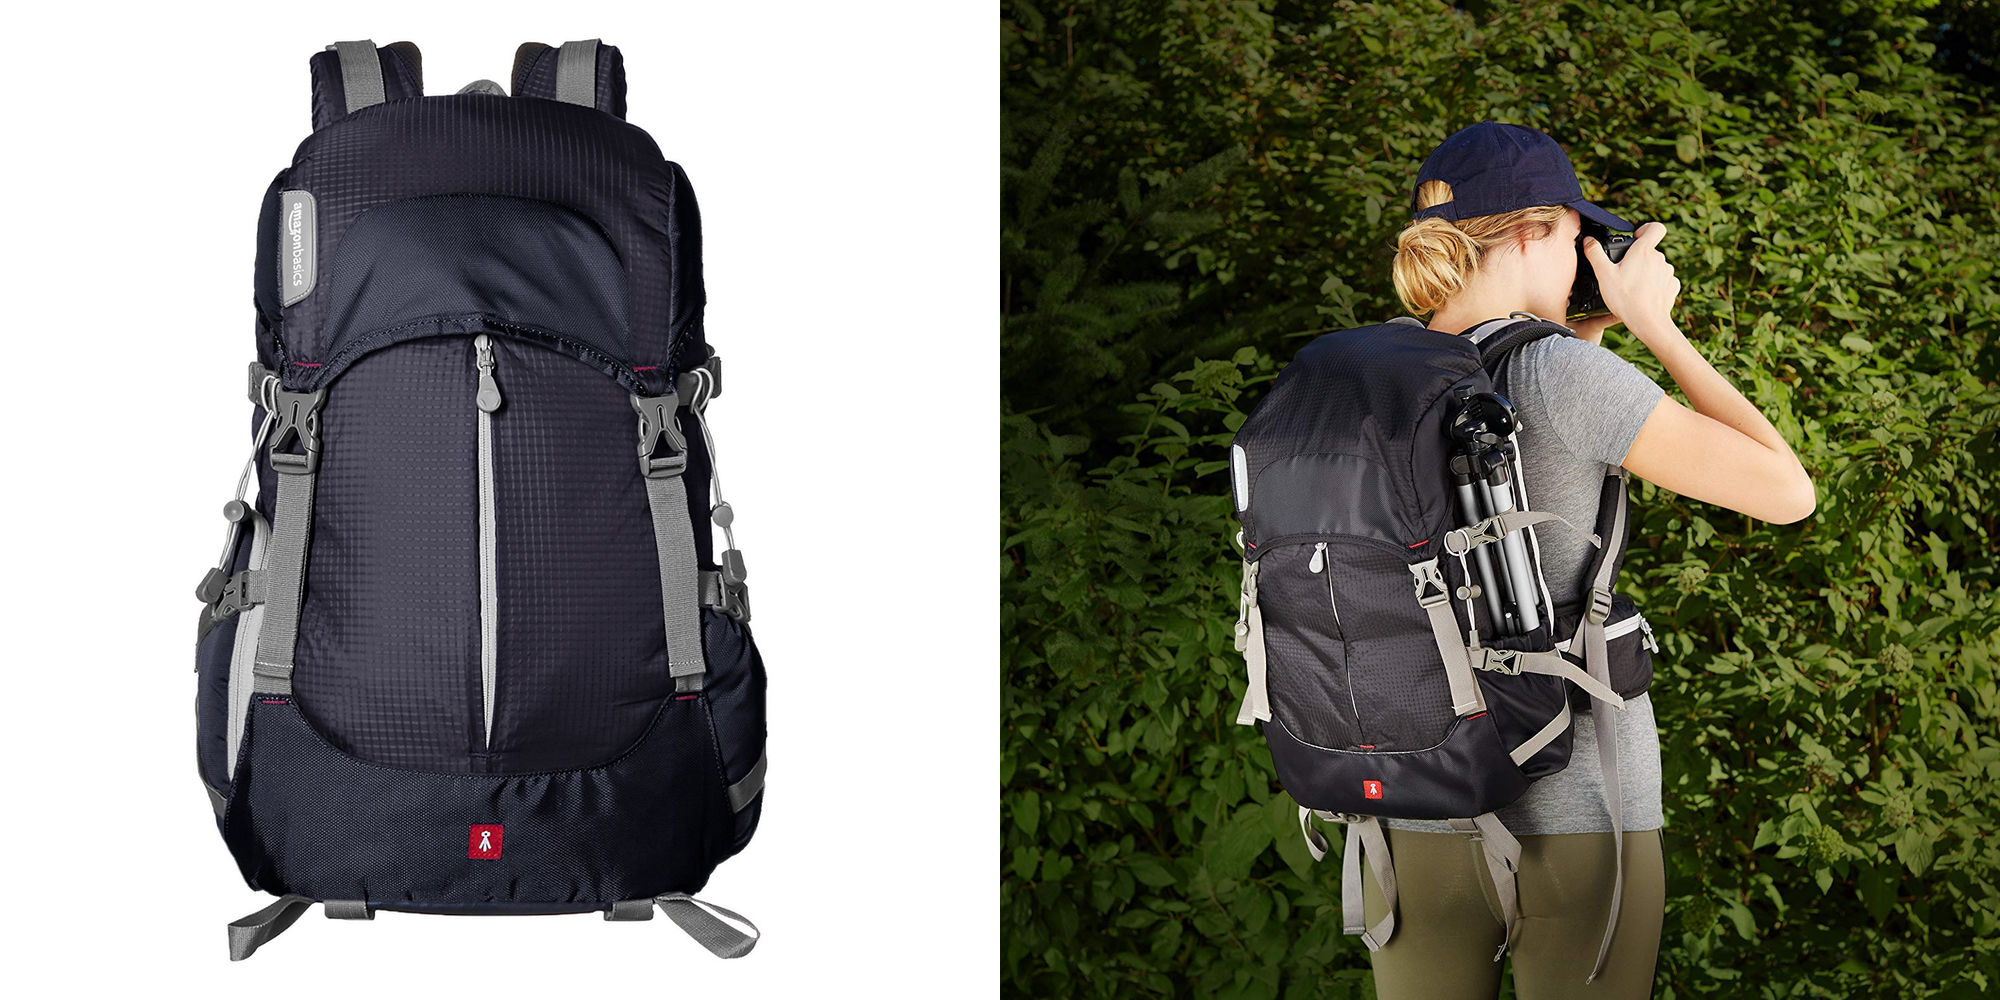 AmazonBasics' Hiker Backpack fits your 13-inch MacBook, a DSLR and more at $26 (Reg. $50)